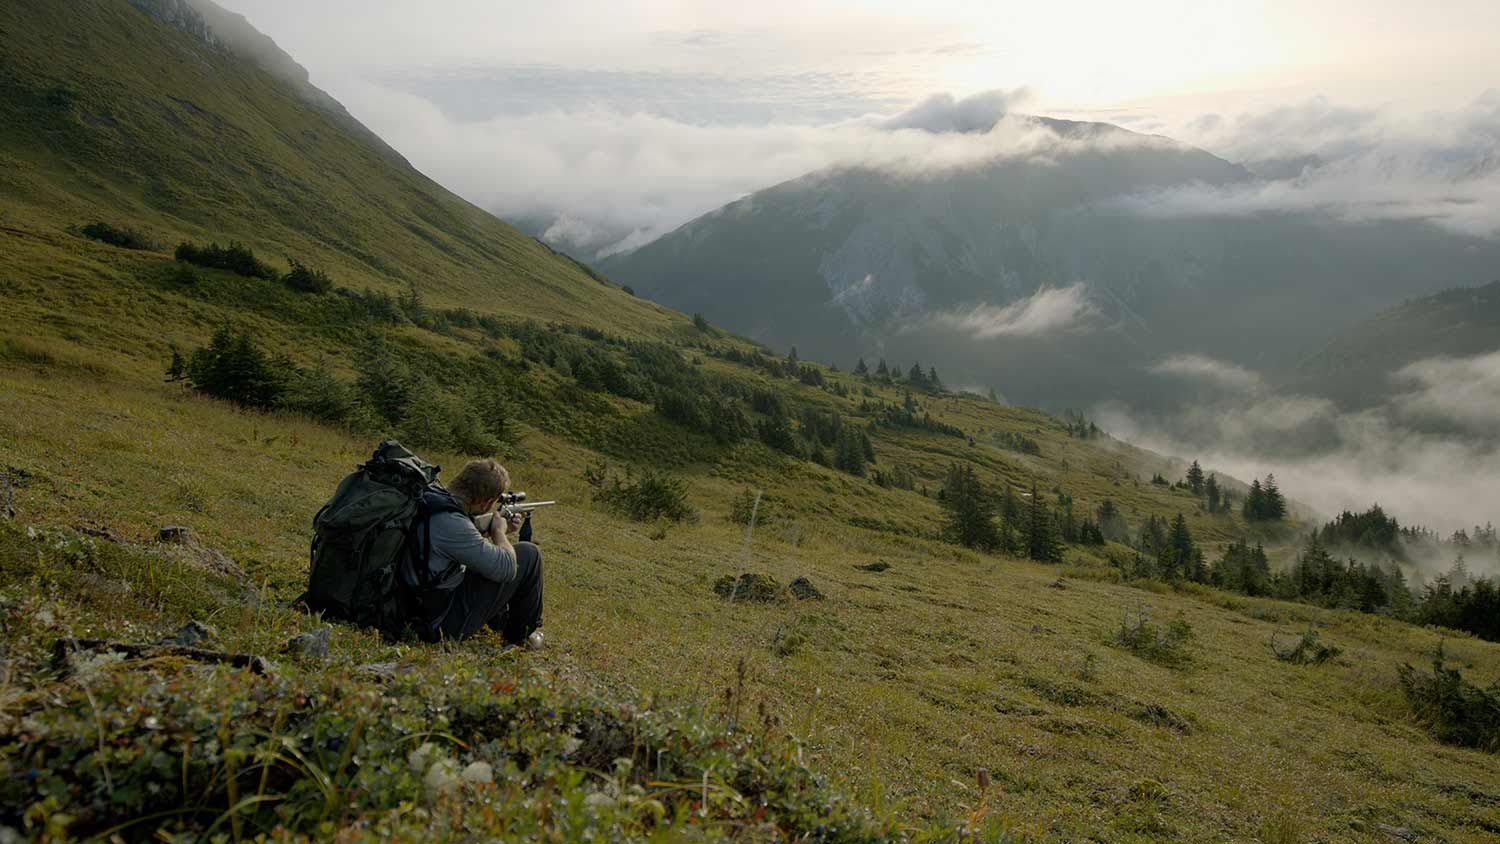 Hunter aiming a rifle in Alaska's Tongass National Forest